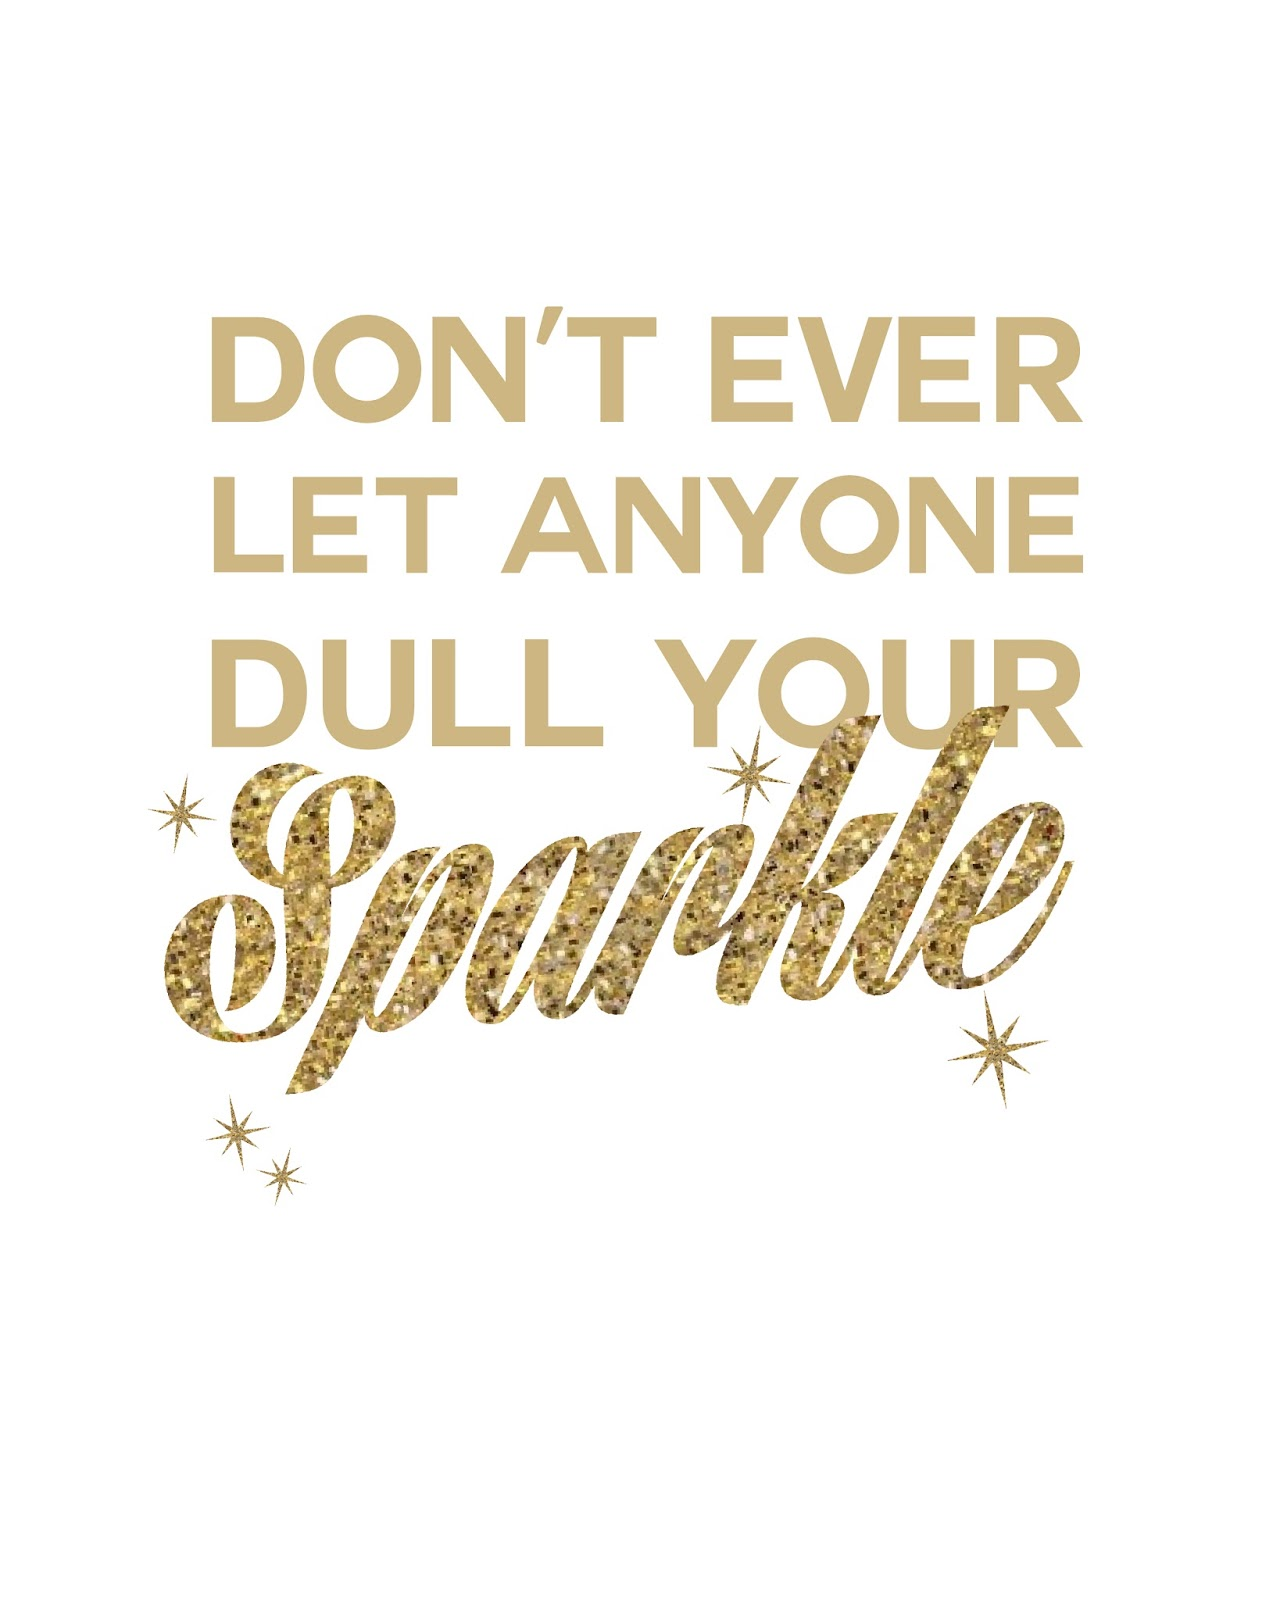 Quote of the Day :: Don't ever let anyone dull your sparkle